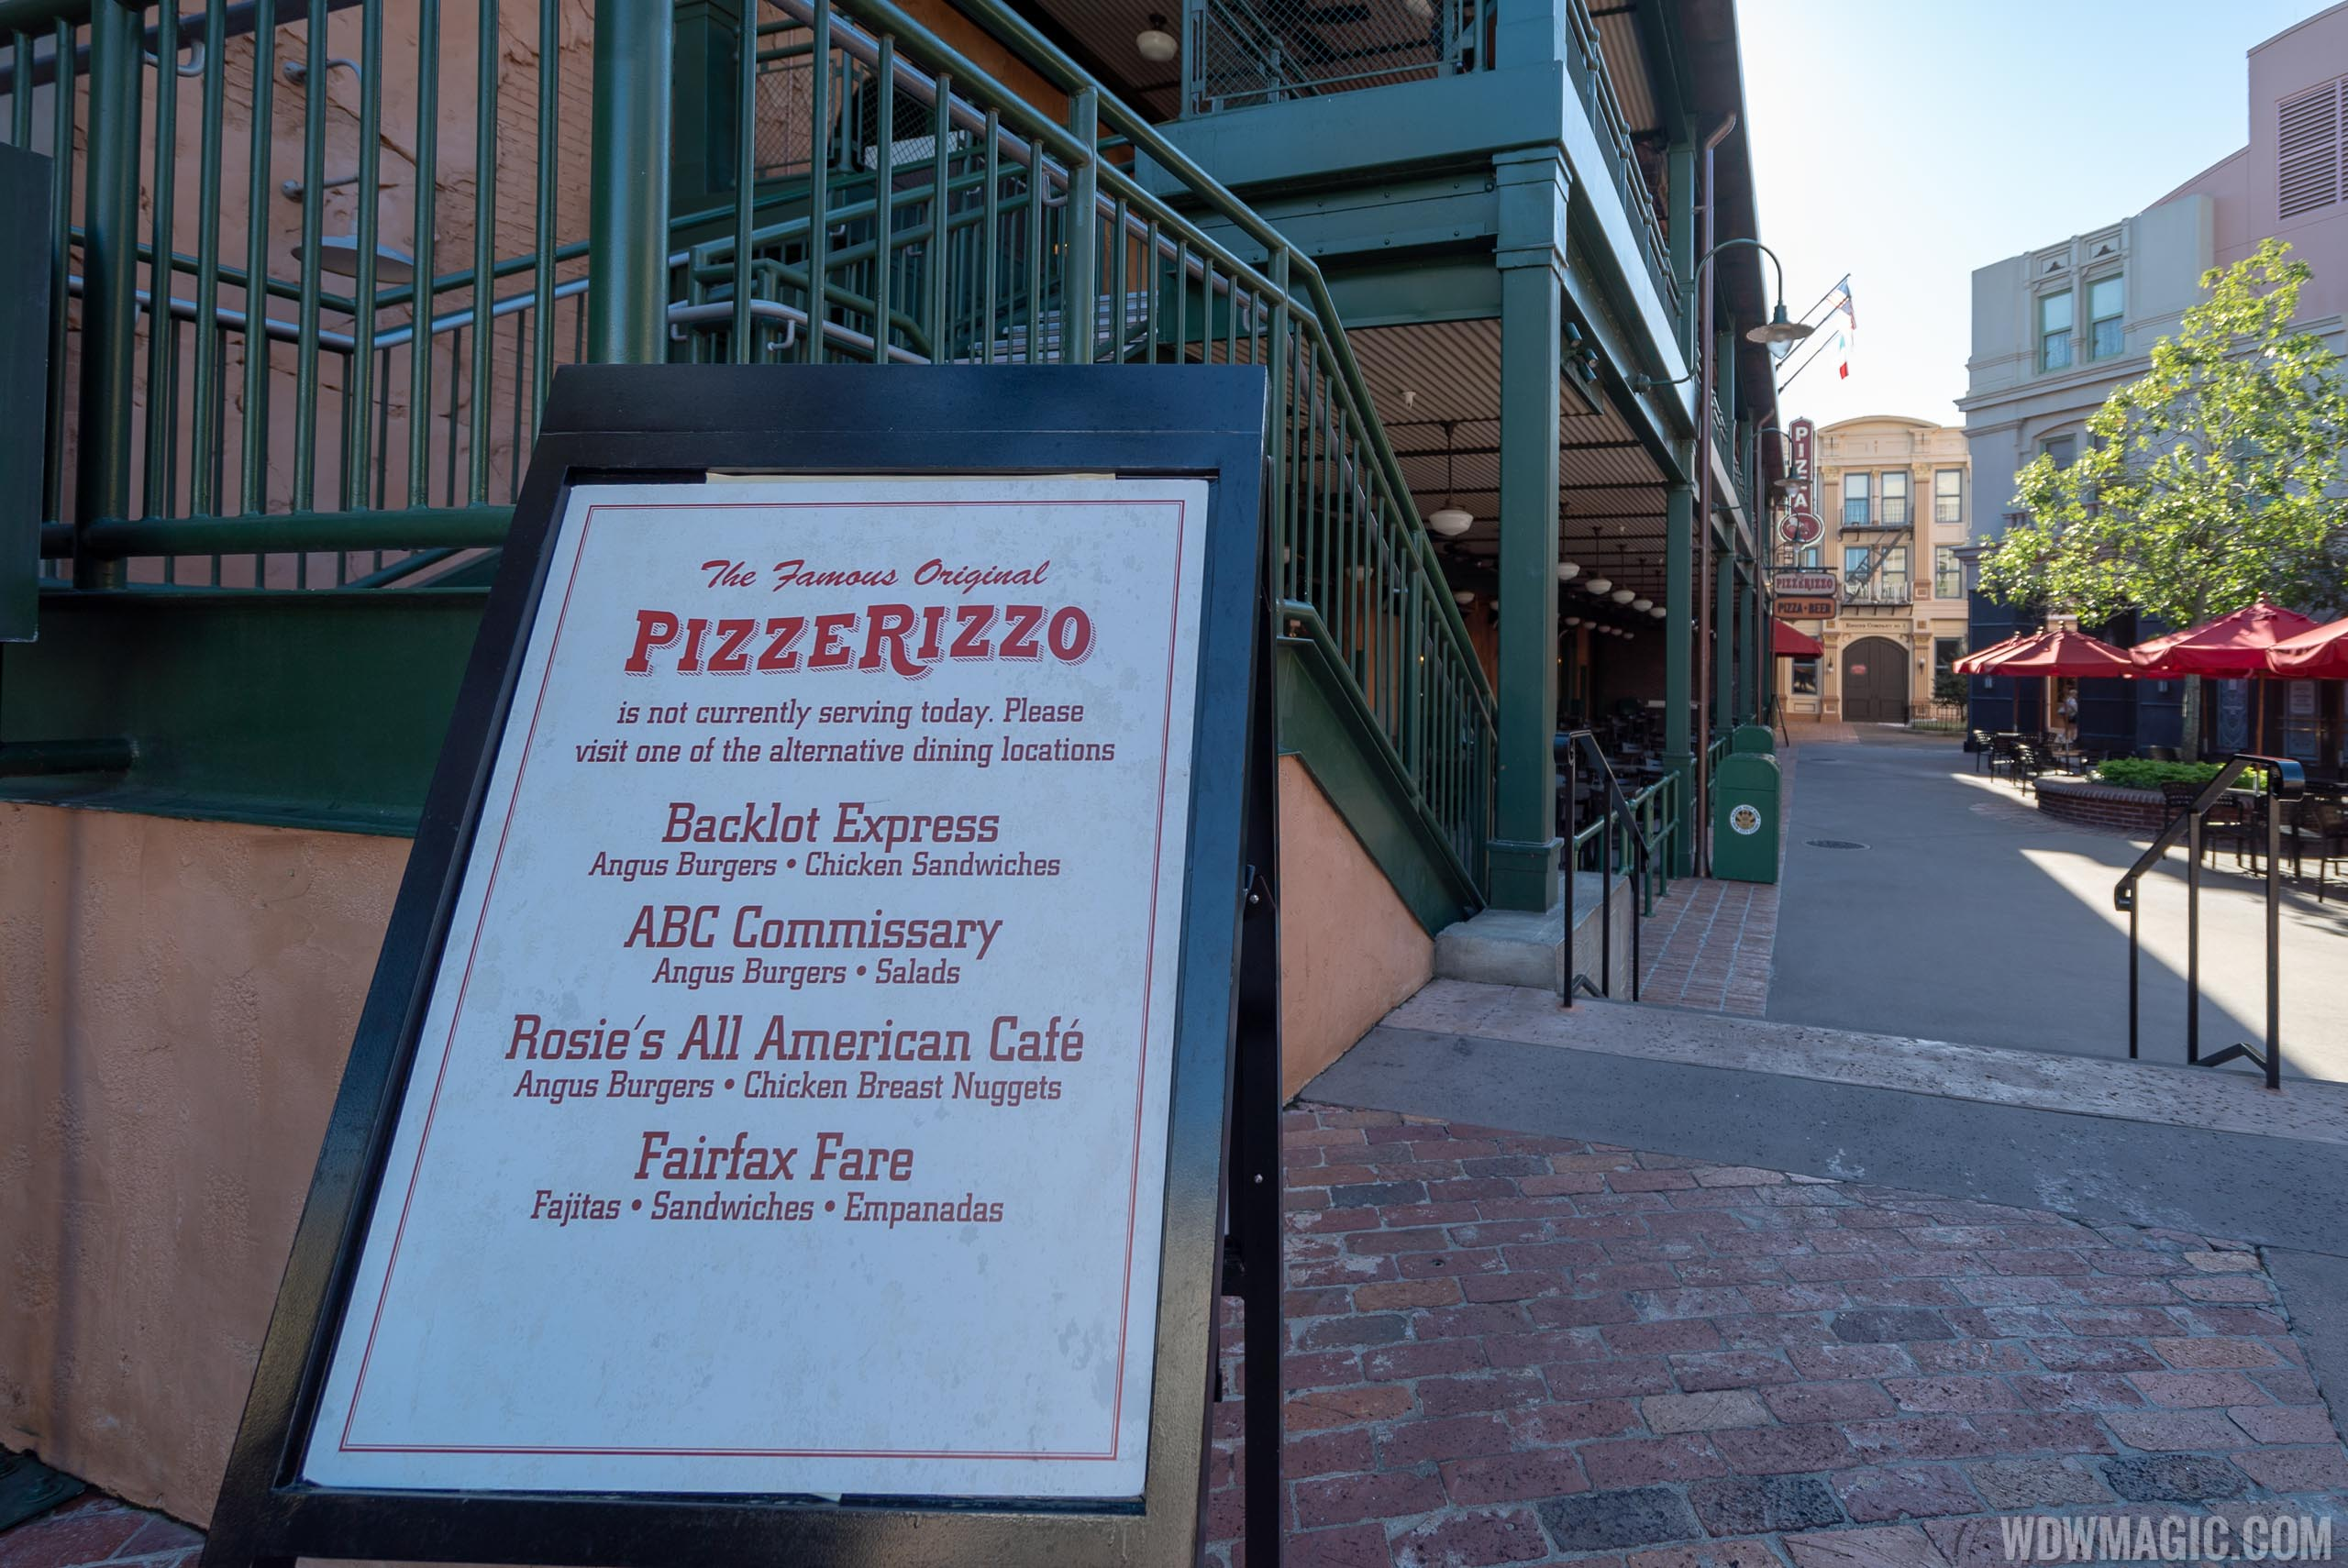 PizzeRizzo closed sign